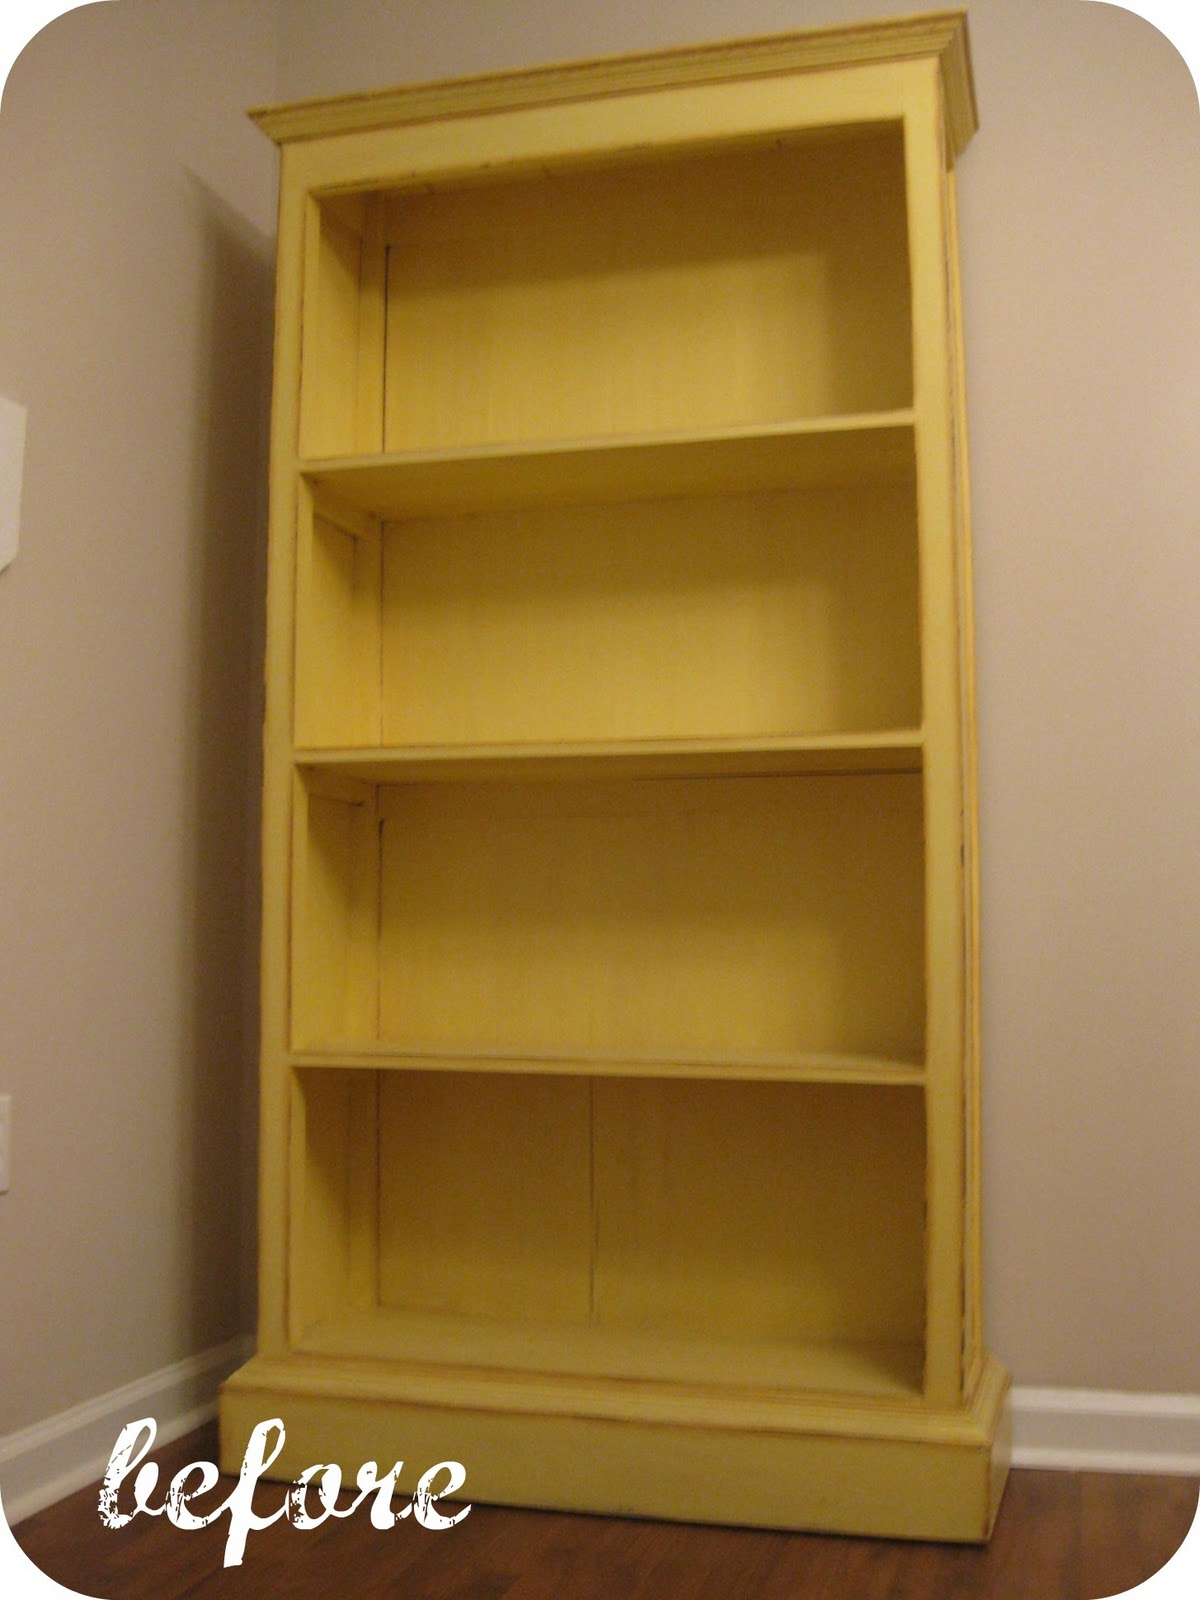 copy bookshelf kitchen bookcase a yellow com pretty articles chyka